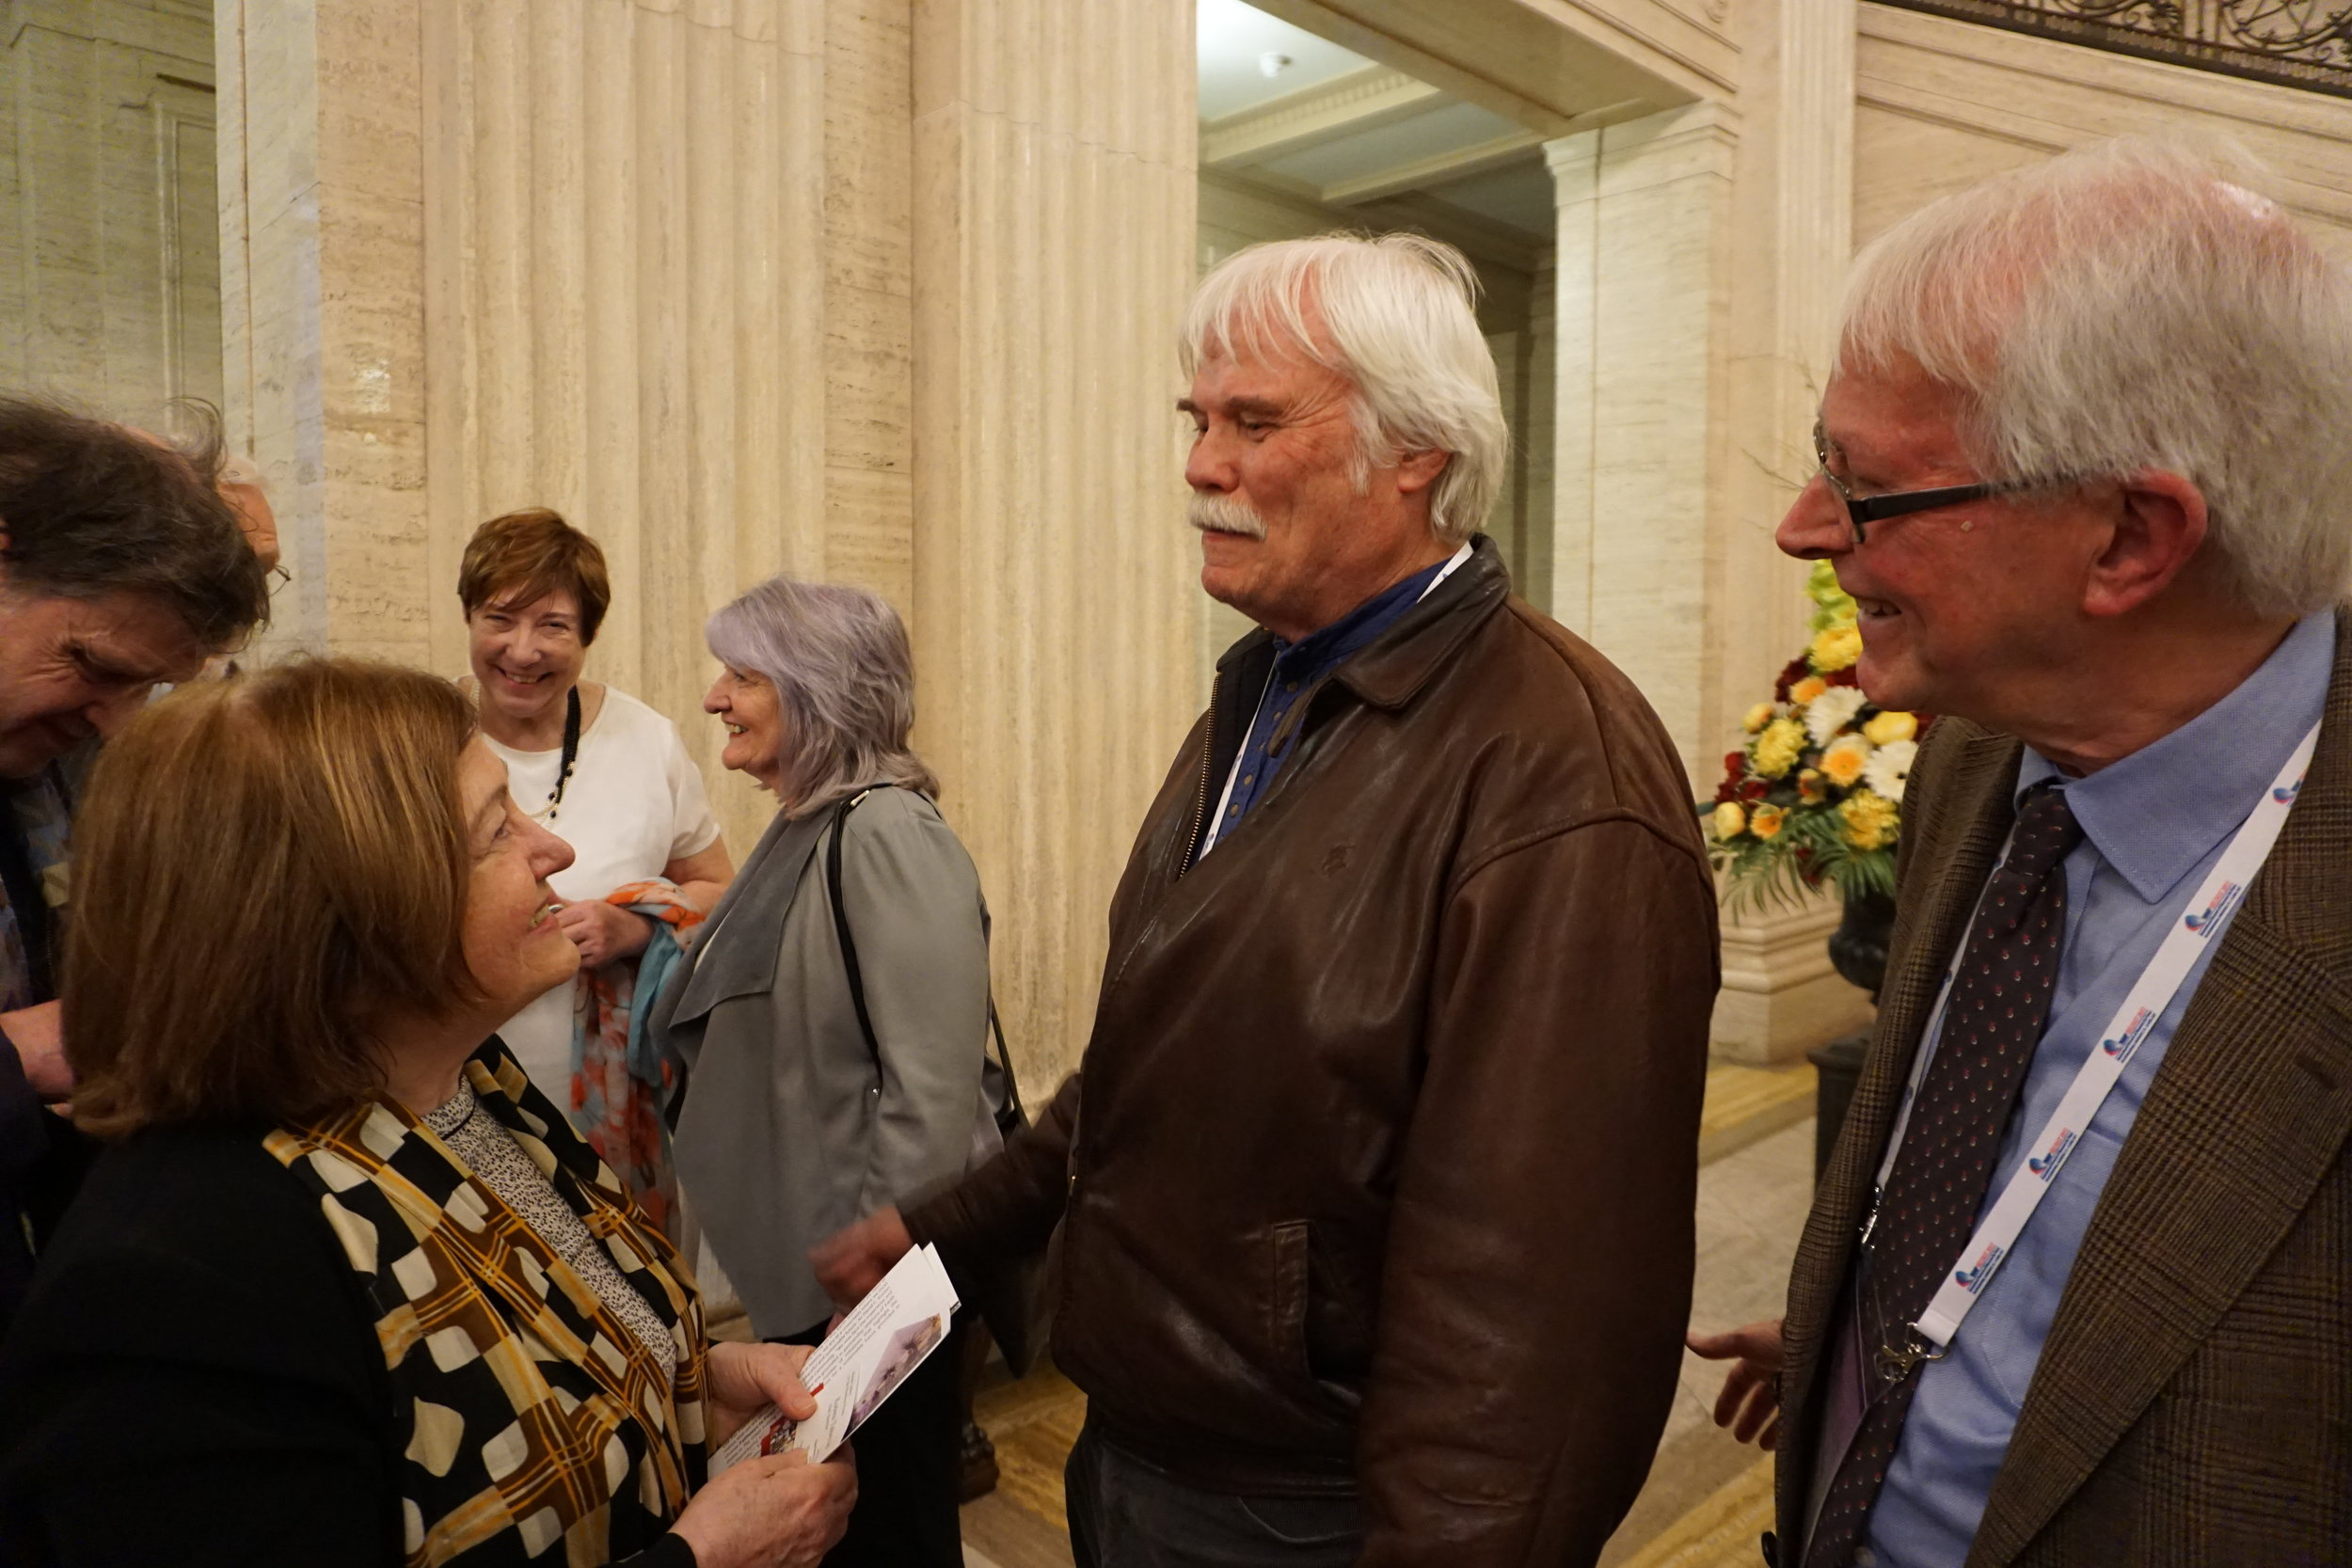 Museum Director, Michael Kalter and the INMB Director talk with Nobel Peace Prize winner, Mairead Maguire at Stormont, the Northern Ireland General Assembly.